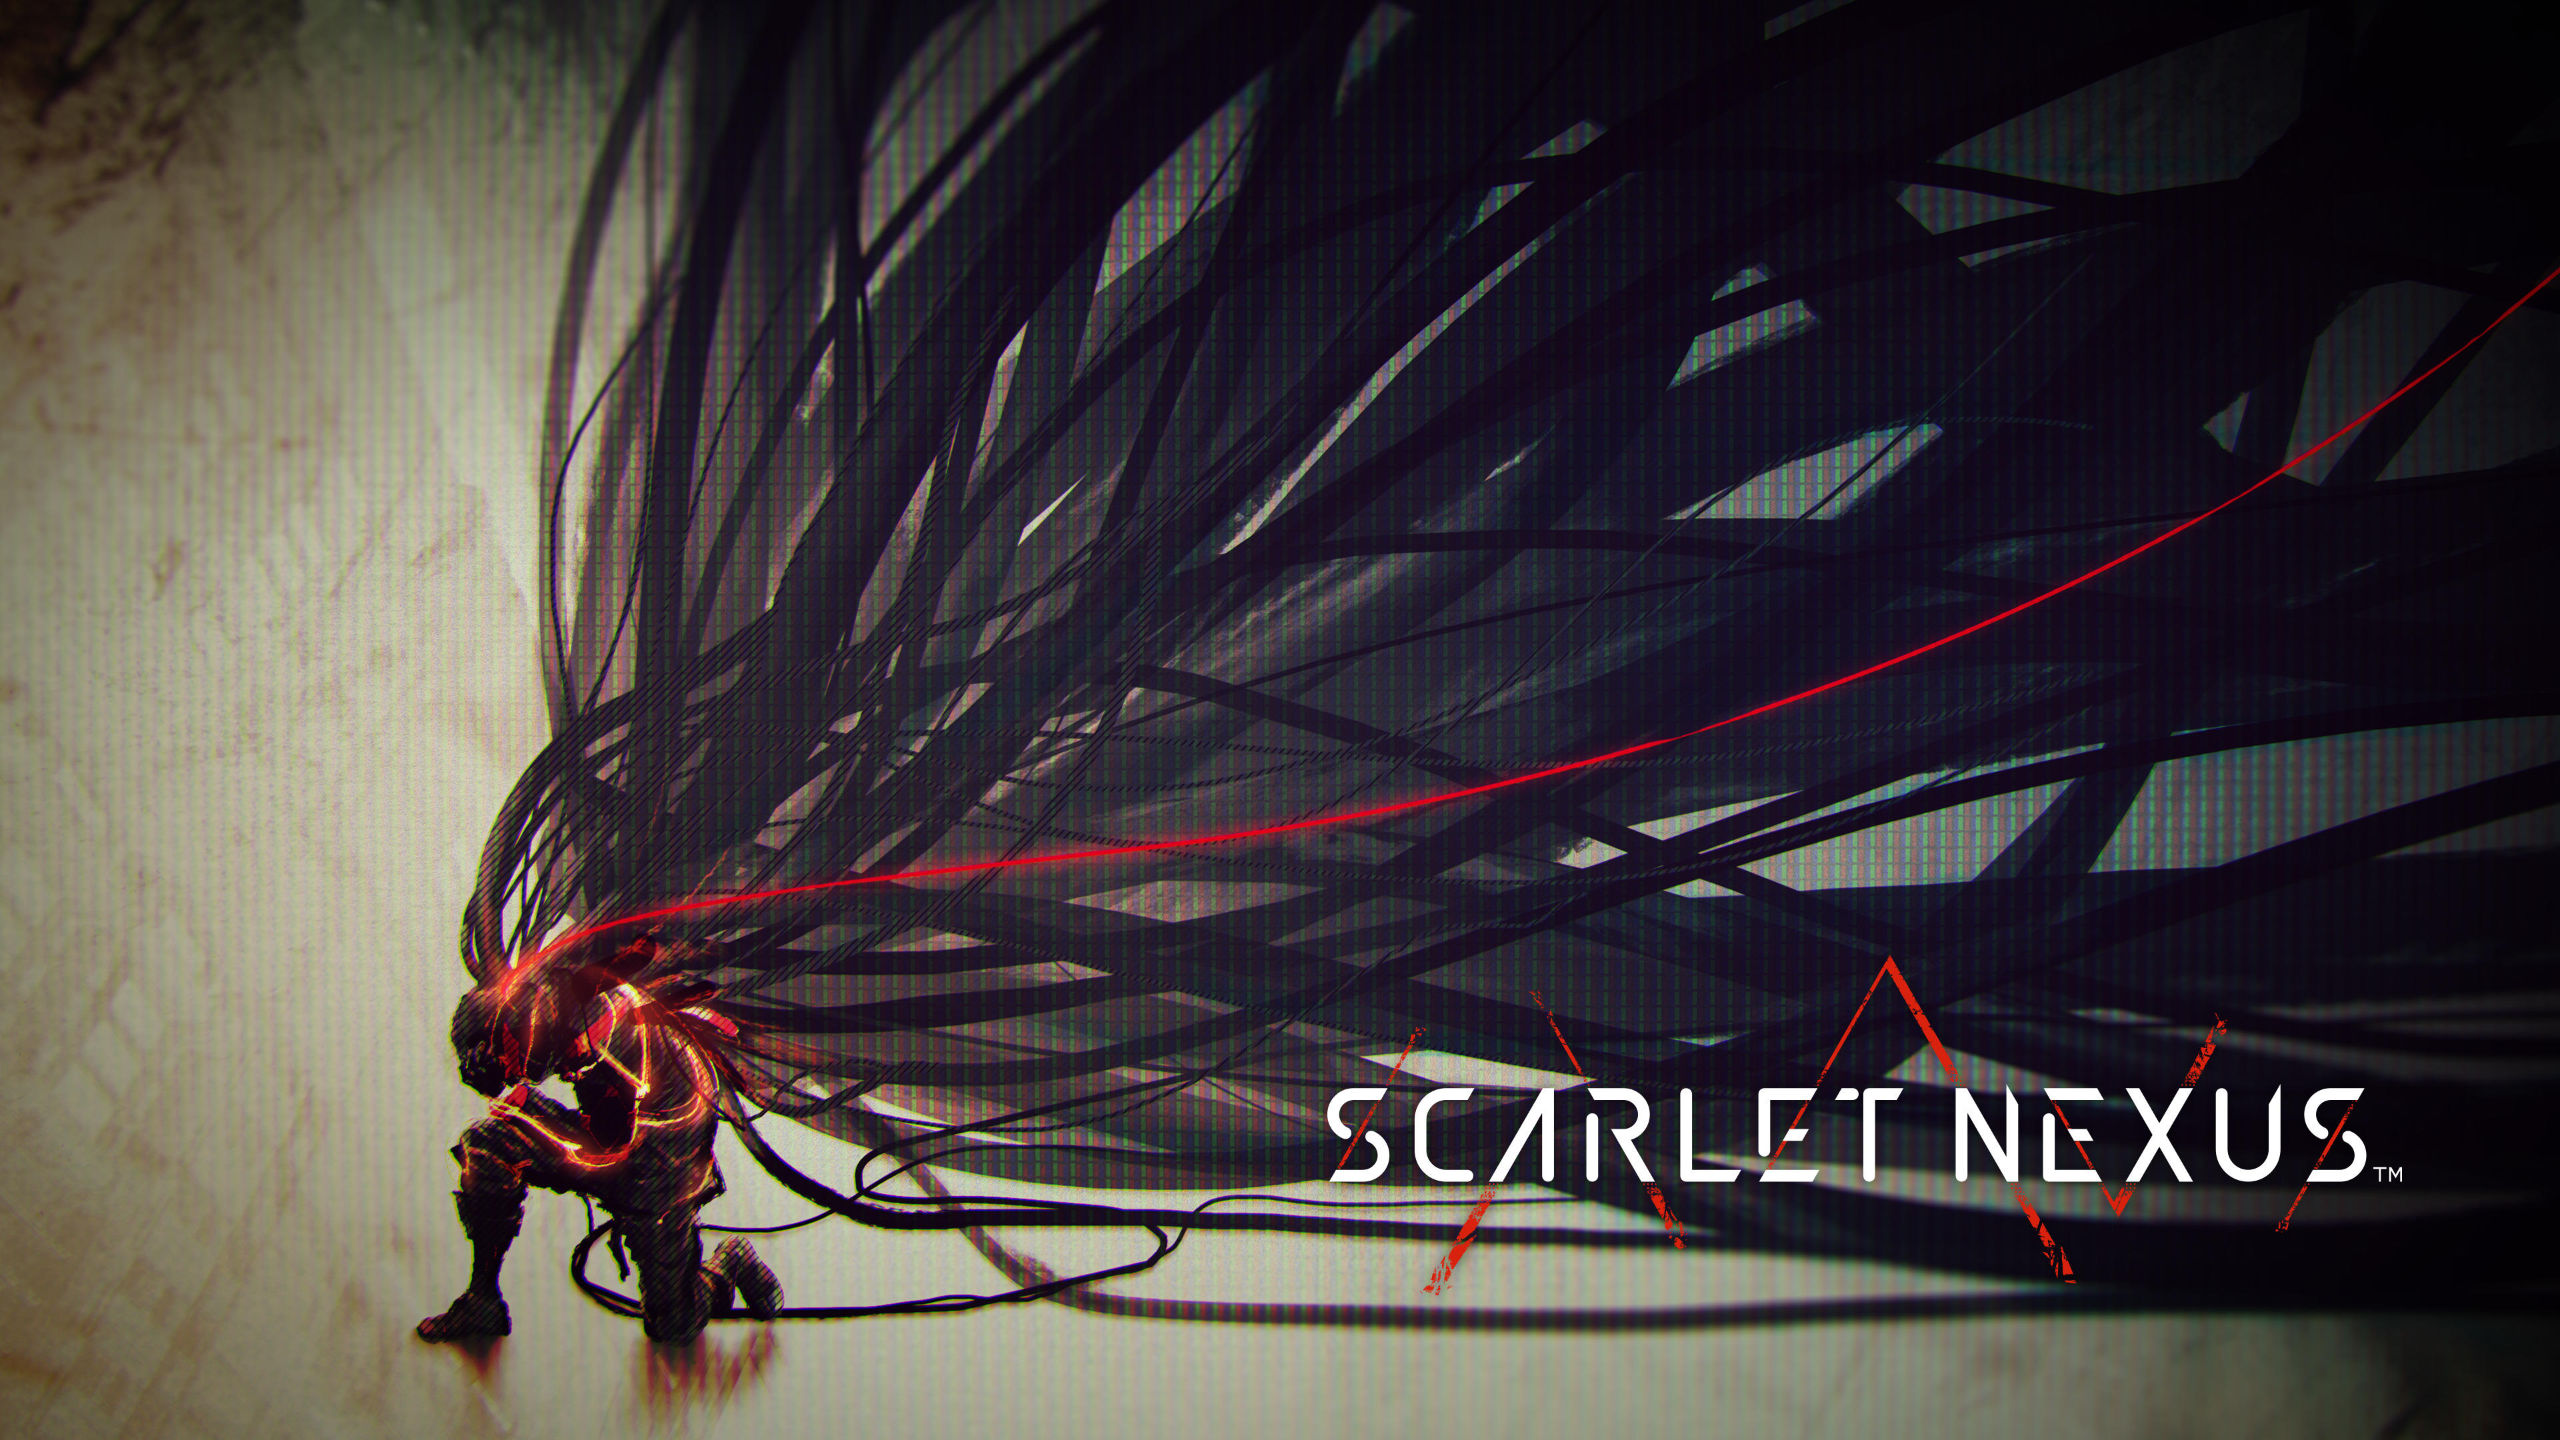 A Scarlet Nexus character with wires coming from the back of their head